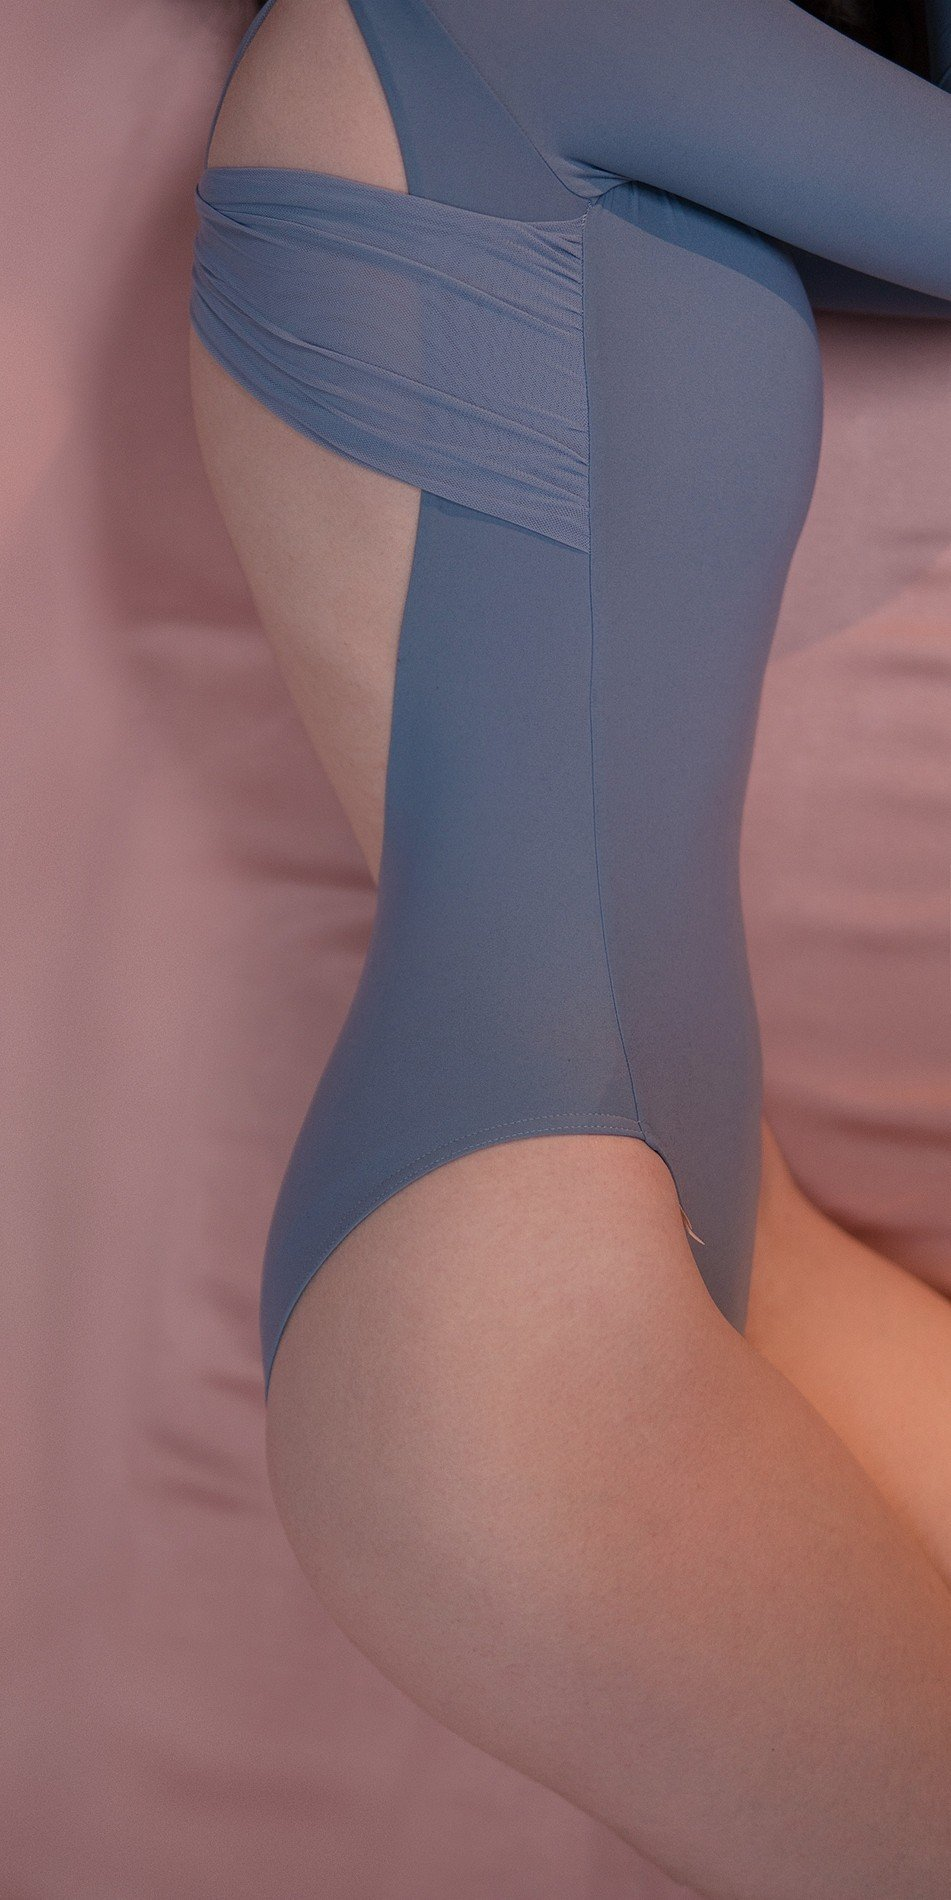 GRES knotted20back20leotard20with20sleeves blue 2 r 1